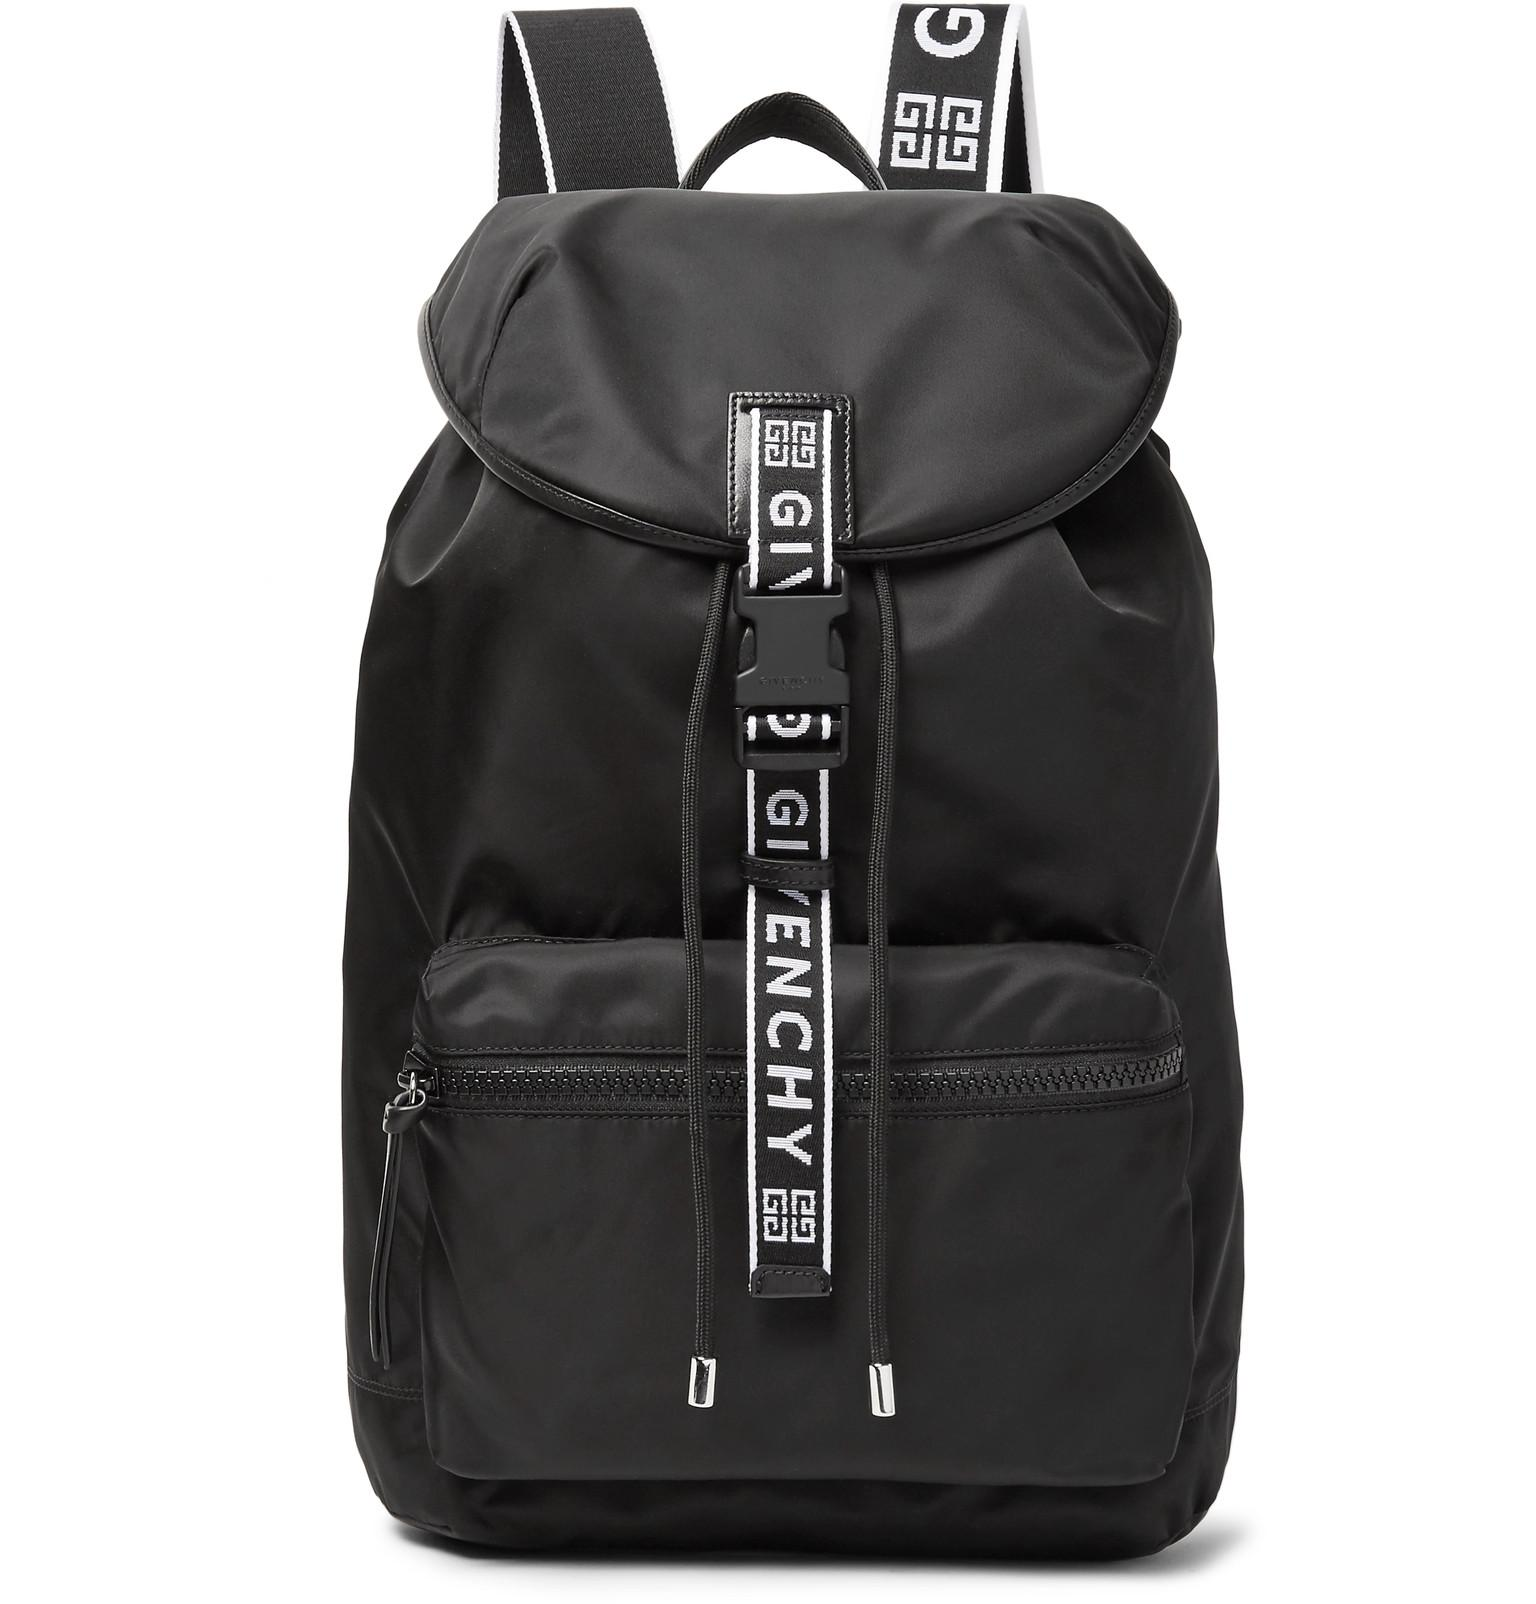 961393d5a550 Givenchy - Black Leather-trimmed Nylon Backpack for Men - Lyst. View  fullscreen